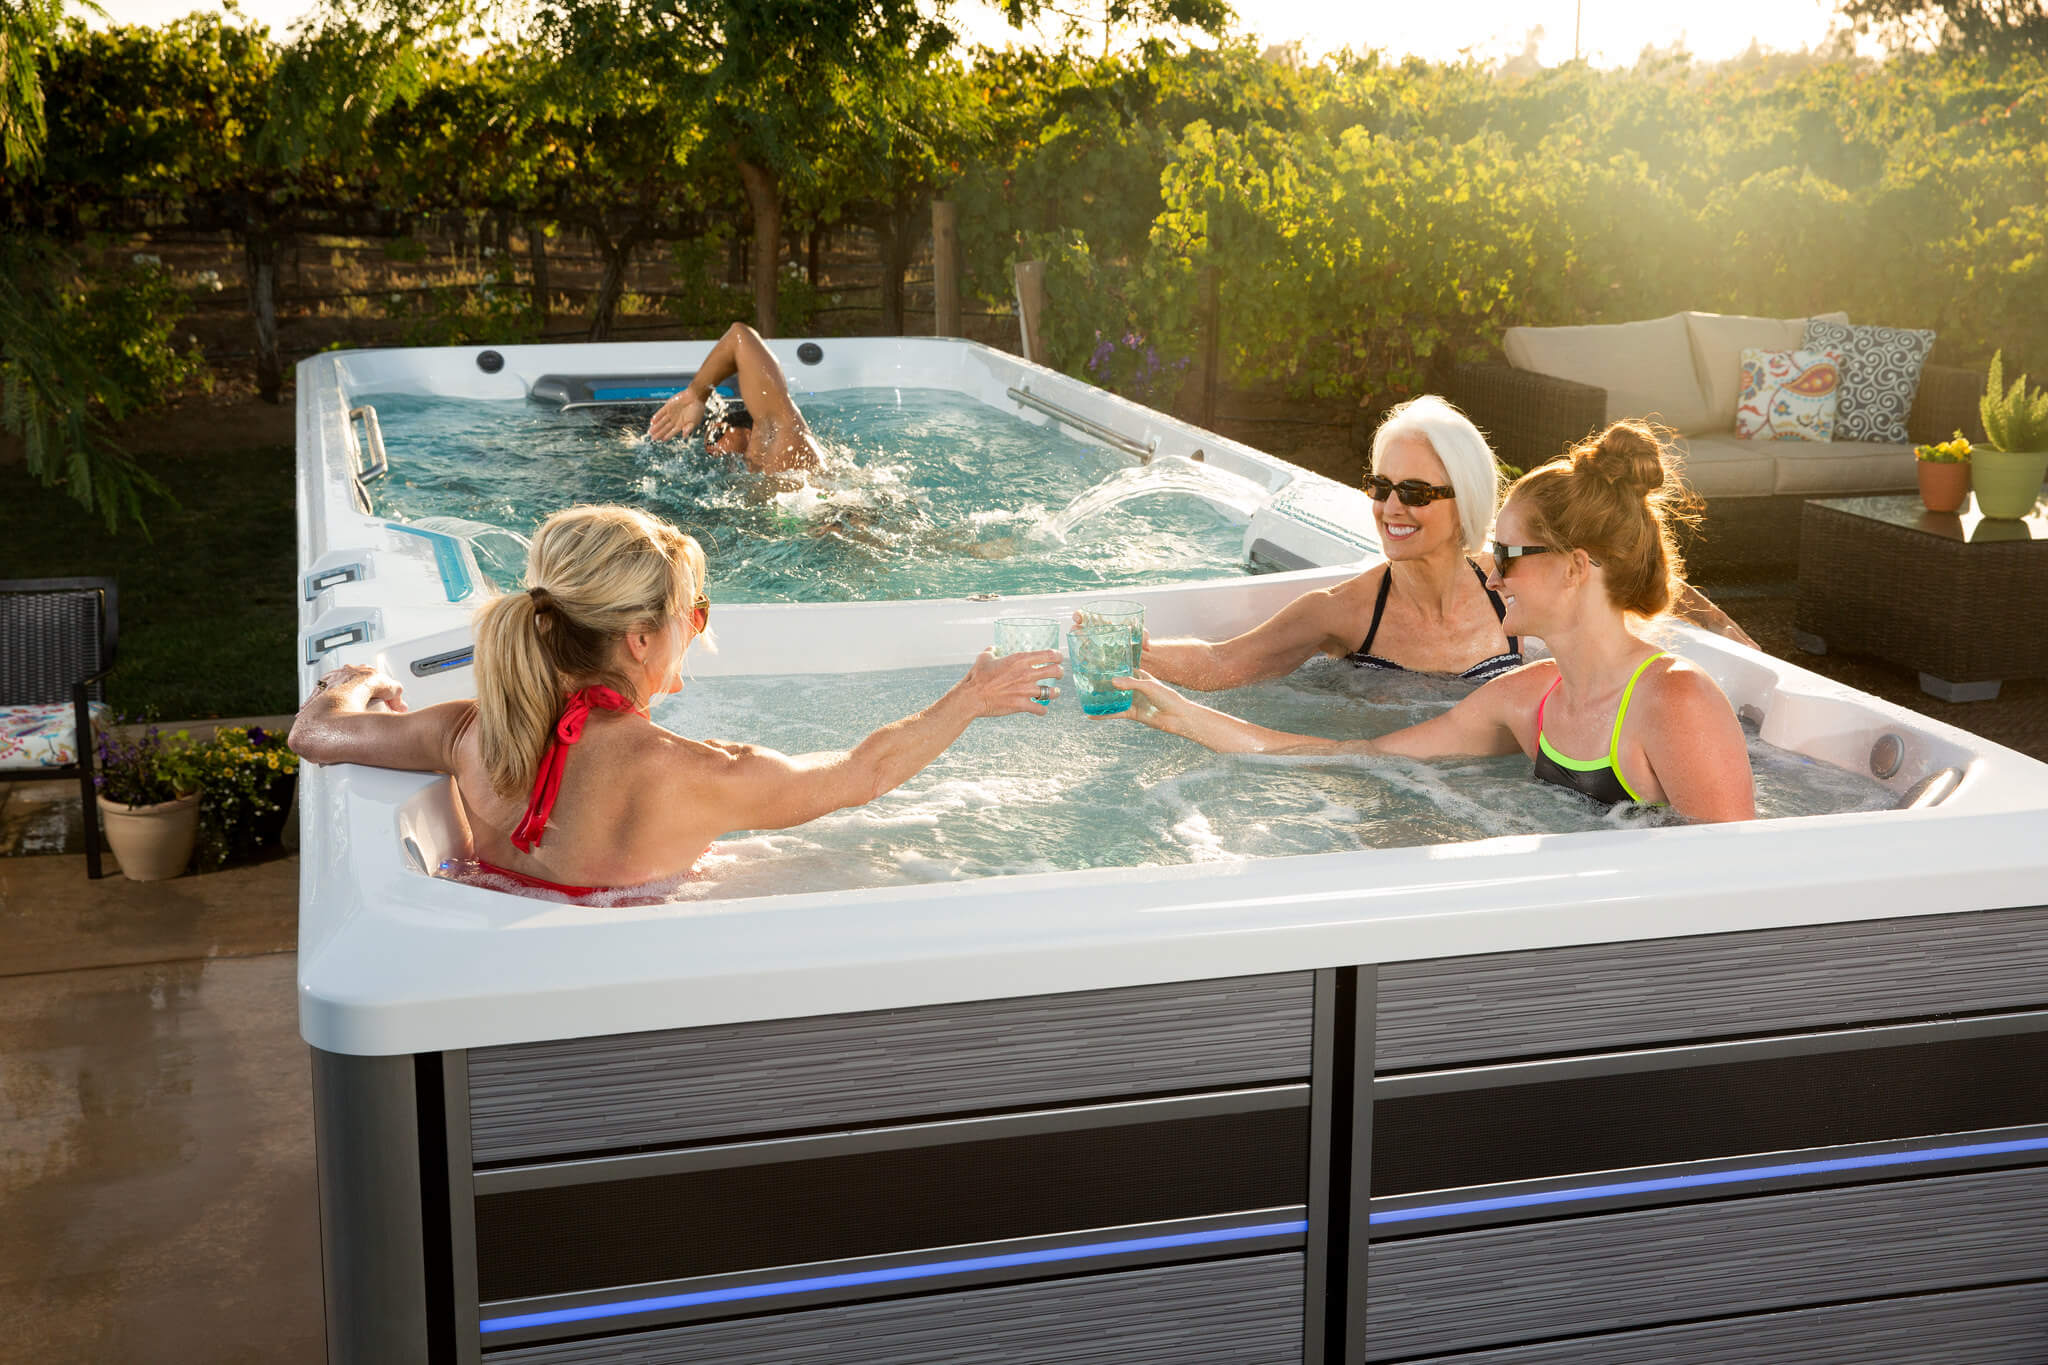 An E2000 Endless Pools Fitness System swim spa with dual chambers